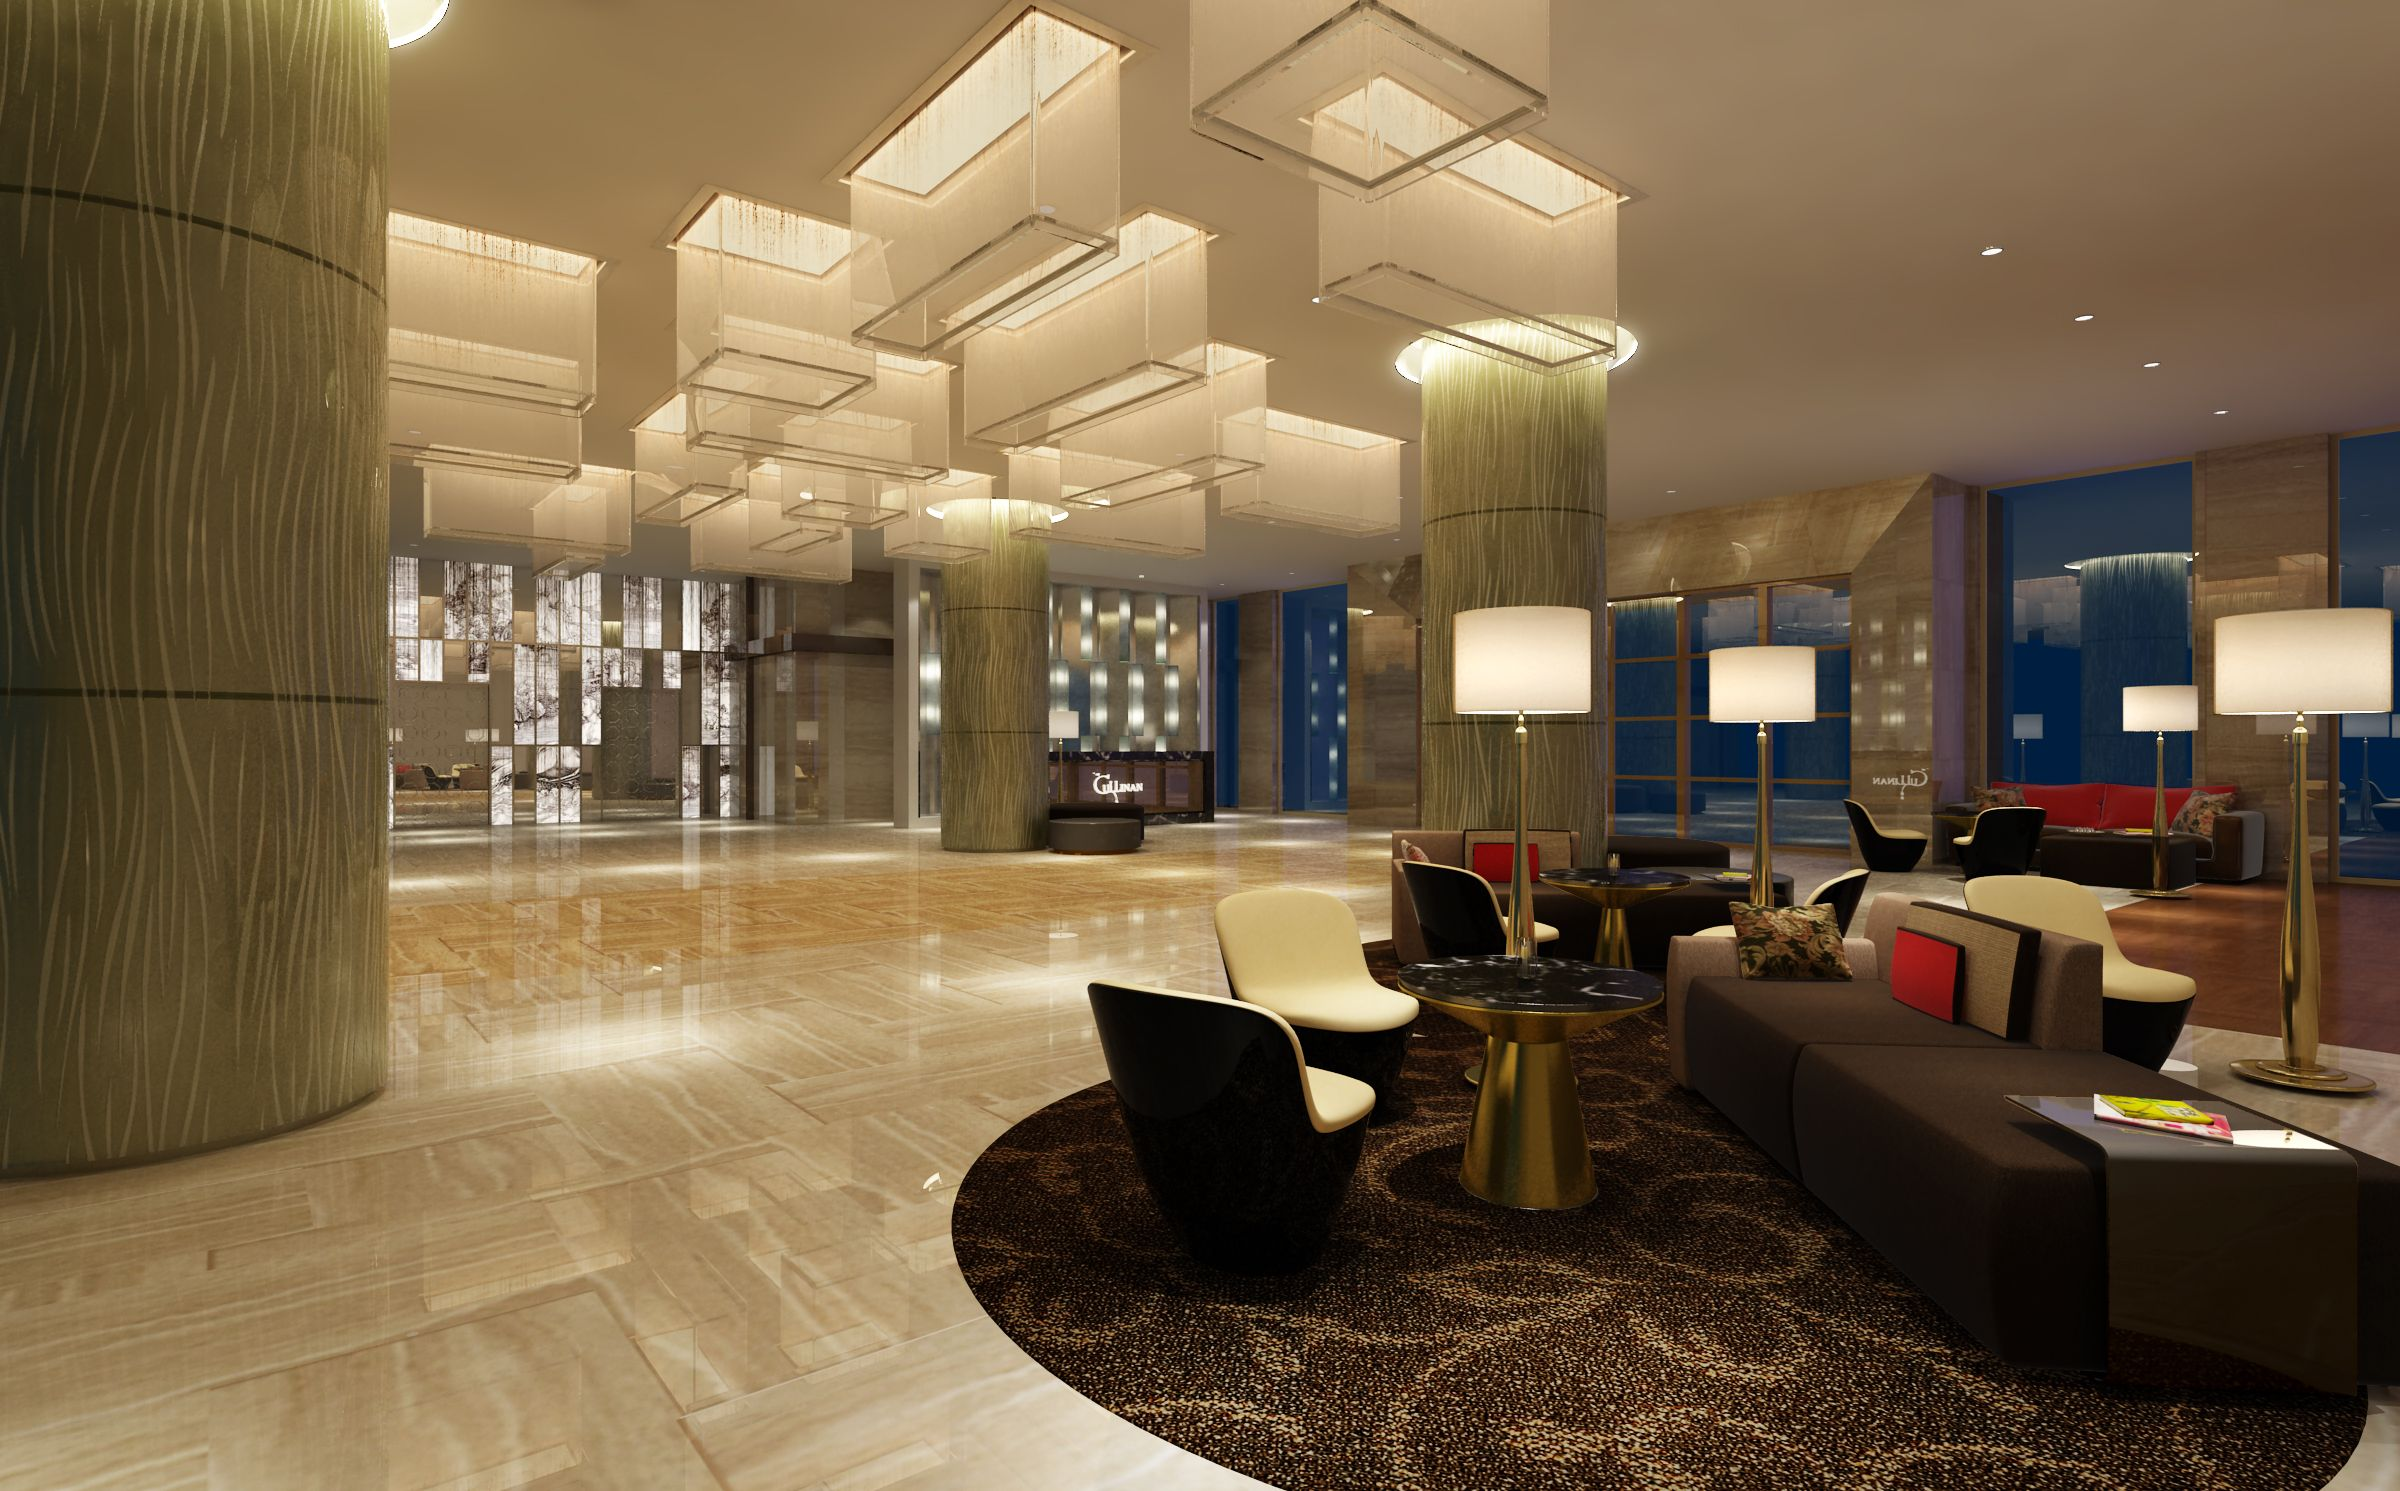 Modern hotel lobby interior design architecture hotel for Hospitality interior design